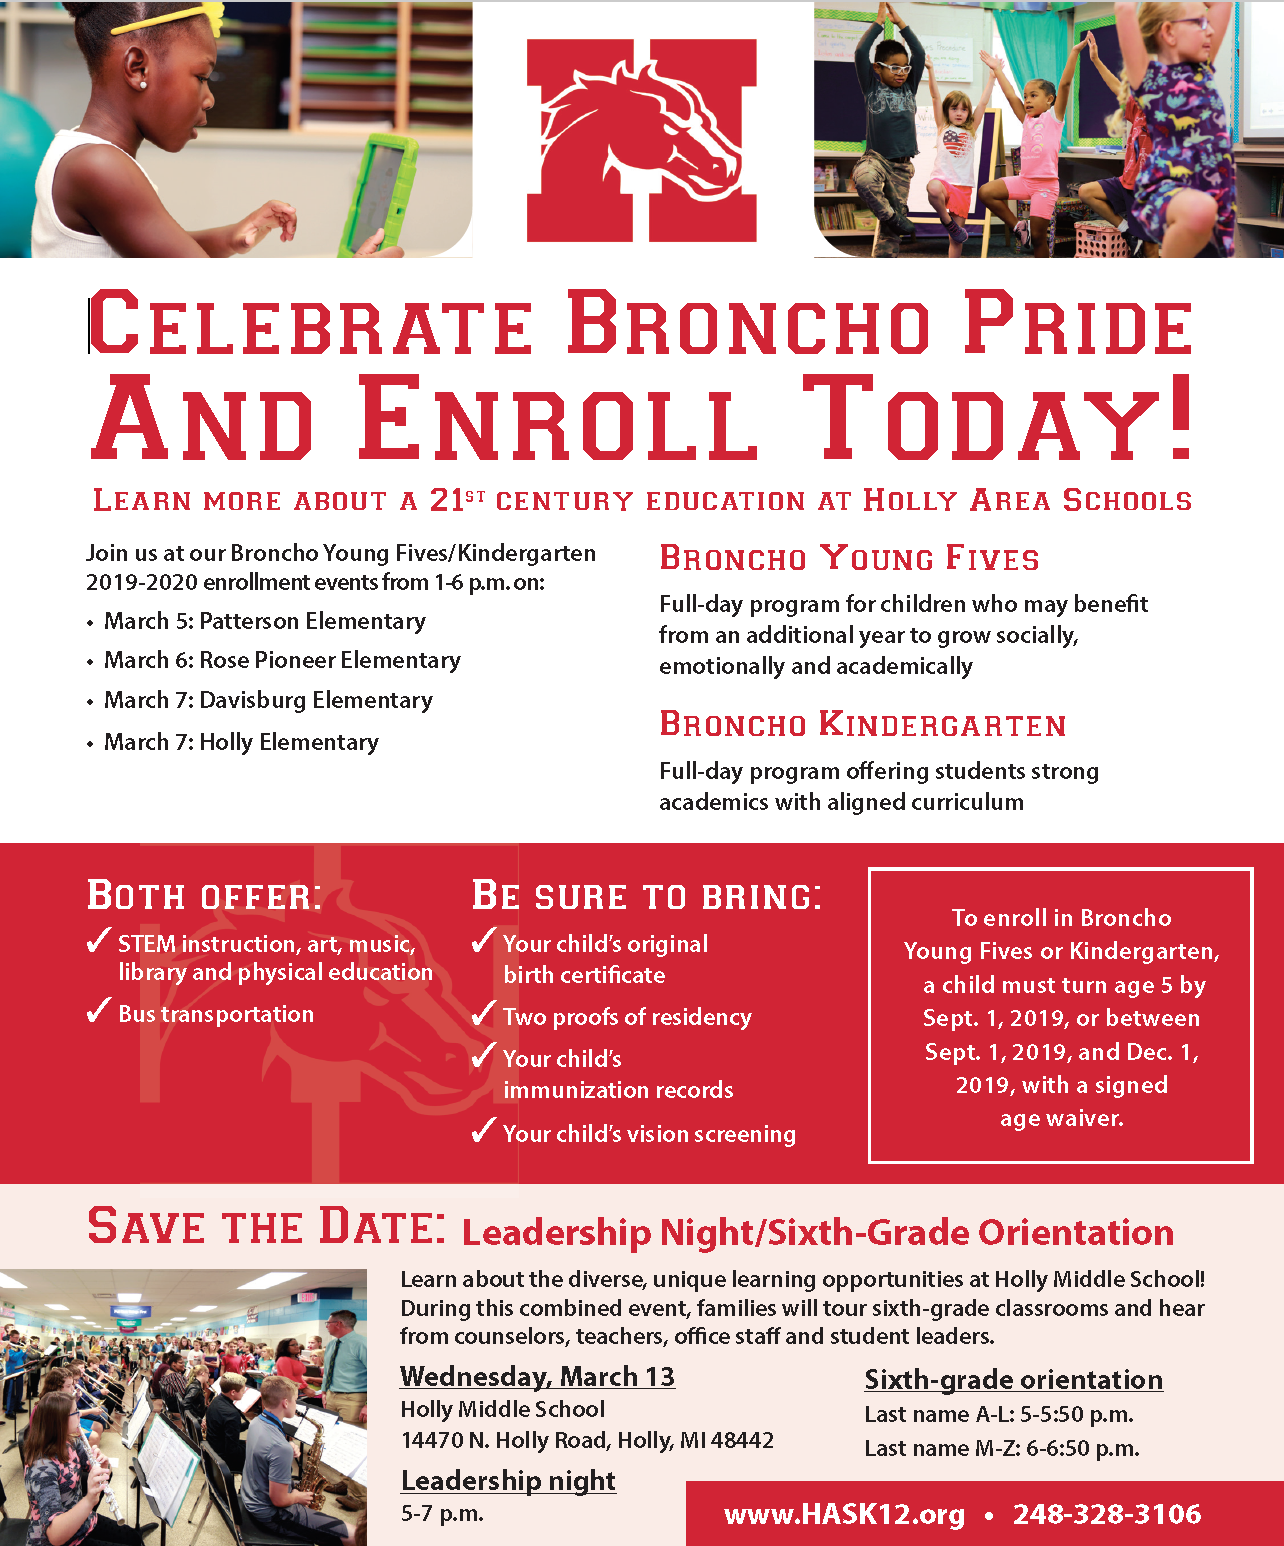 Young Five/Kindergarten Enrollment dates and 6th Grade Orientation Information